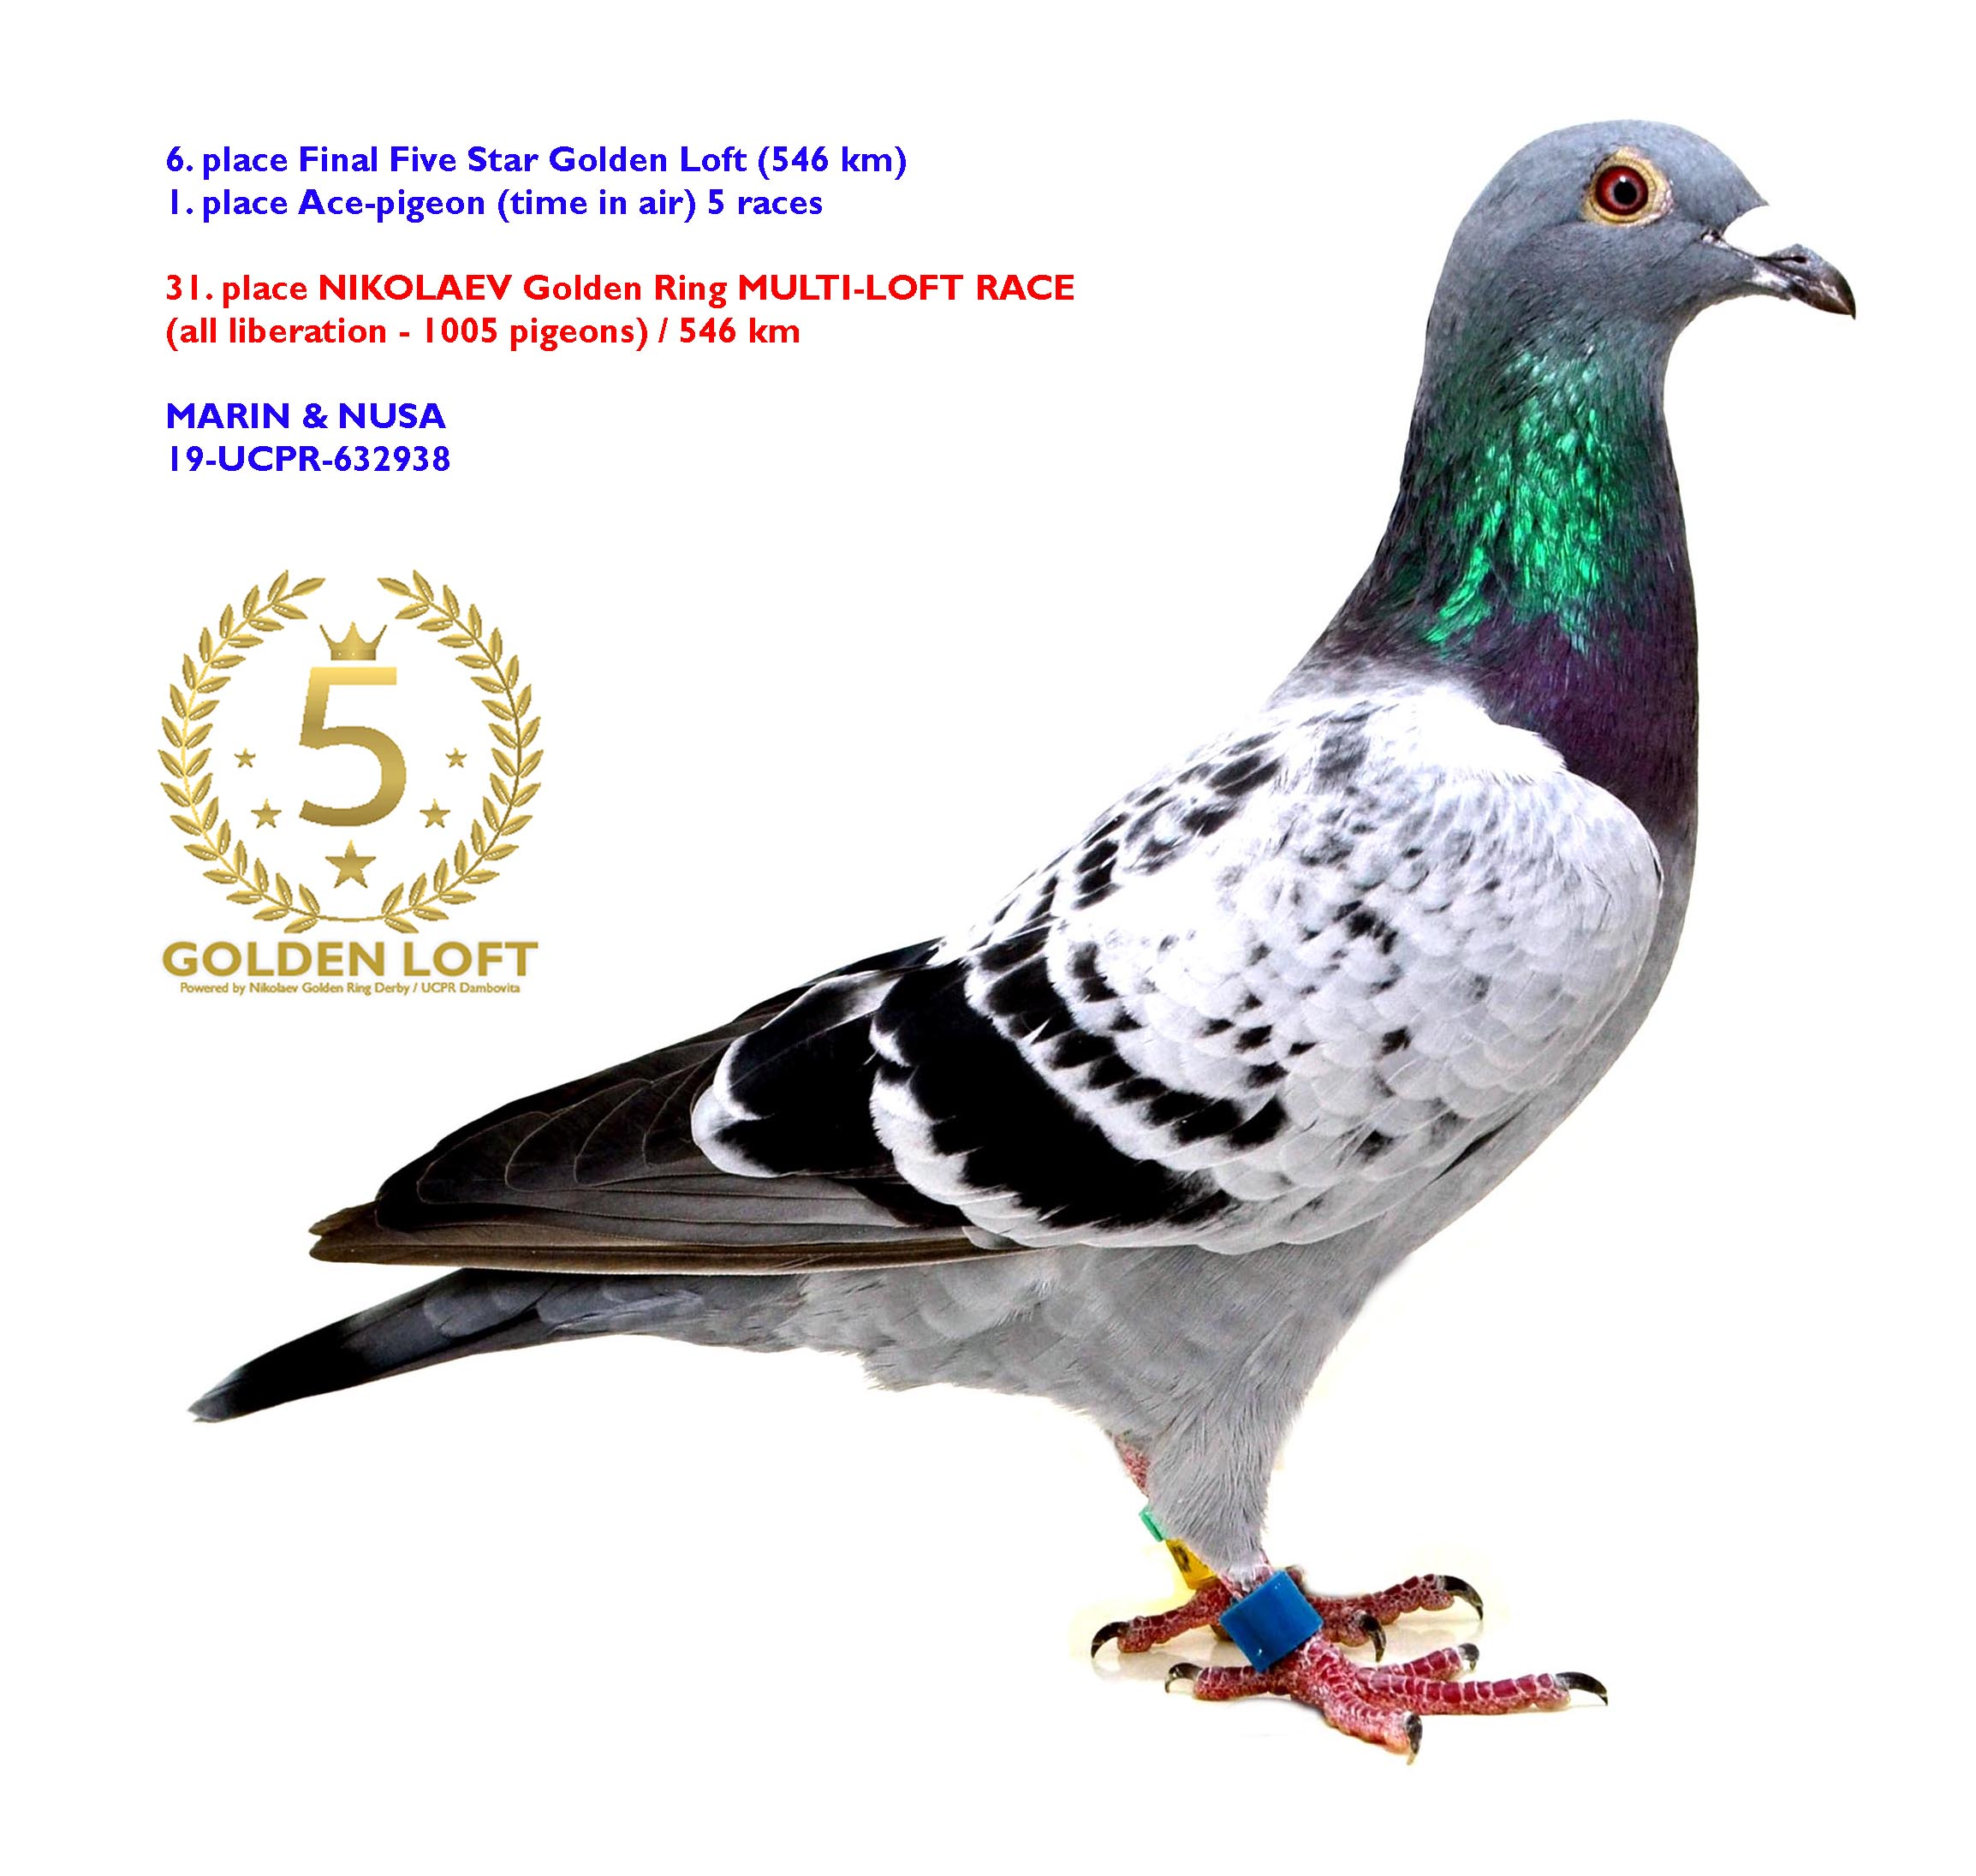 6. FINAL + 1. ACE-PIGEON FIVE STAR GOLDEN LOFT MARIN & NUSA 19-UCPR-632938